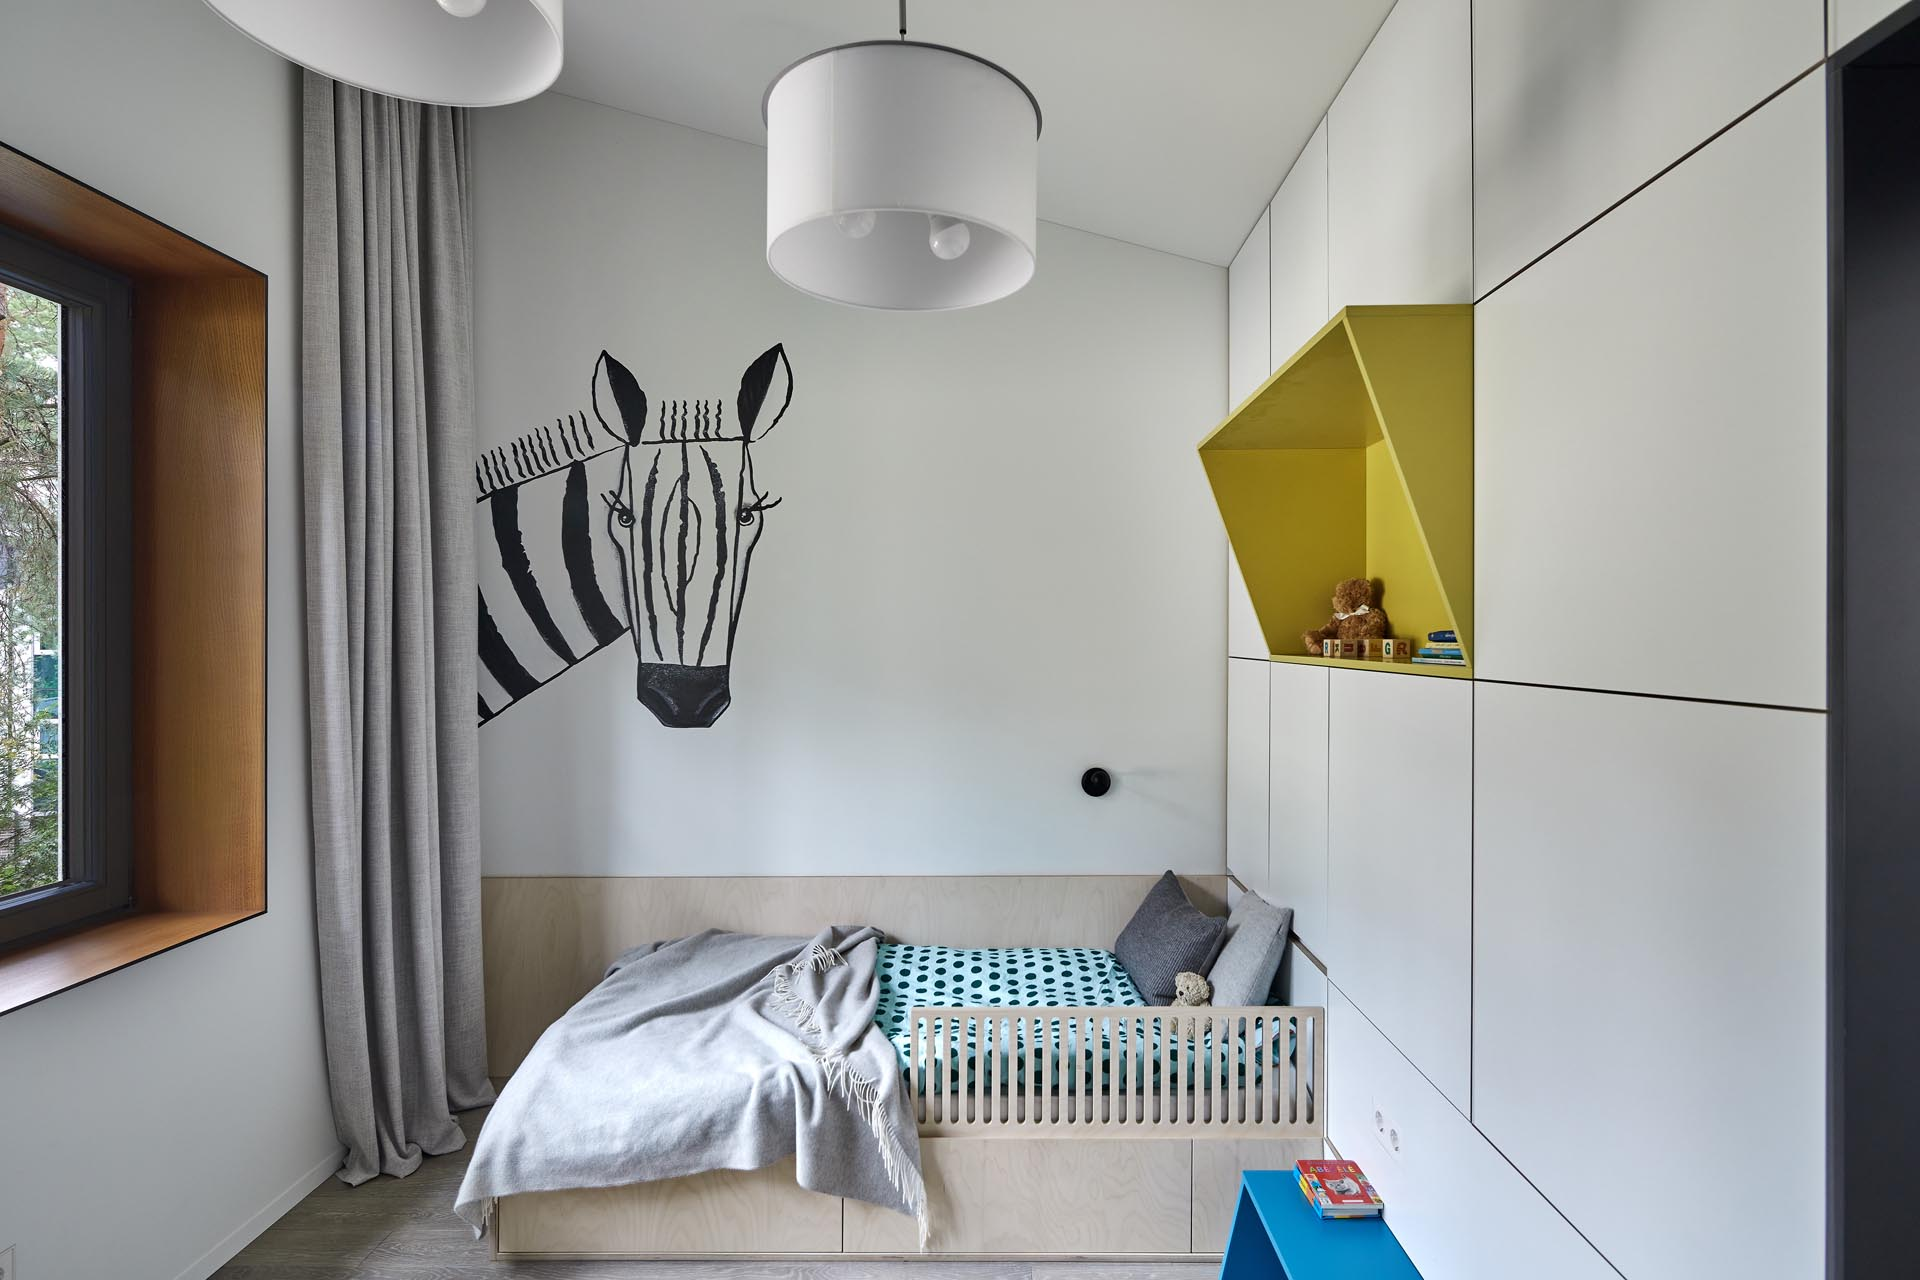 In this modern kid's bedroom, there's a zebra art feature, as well as a colorful yellow shelf and a green desk surrounded by storage.